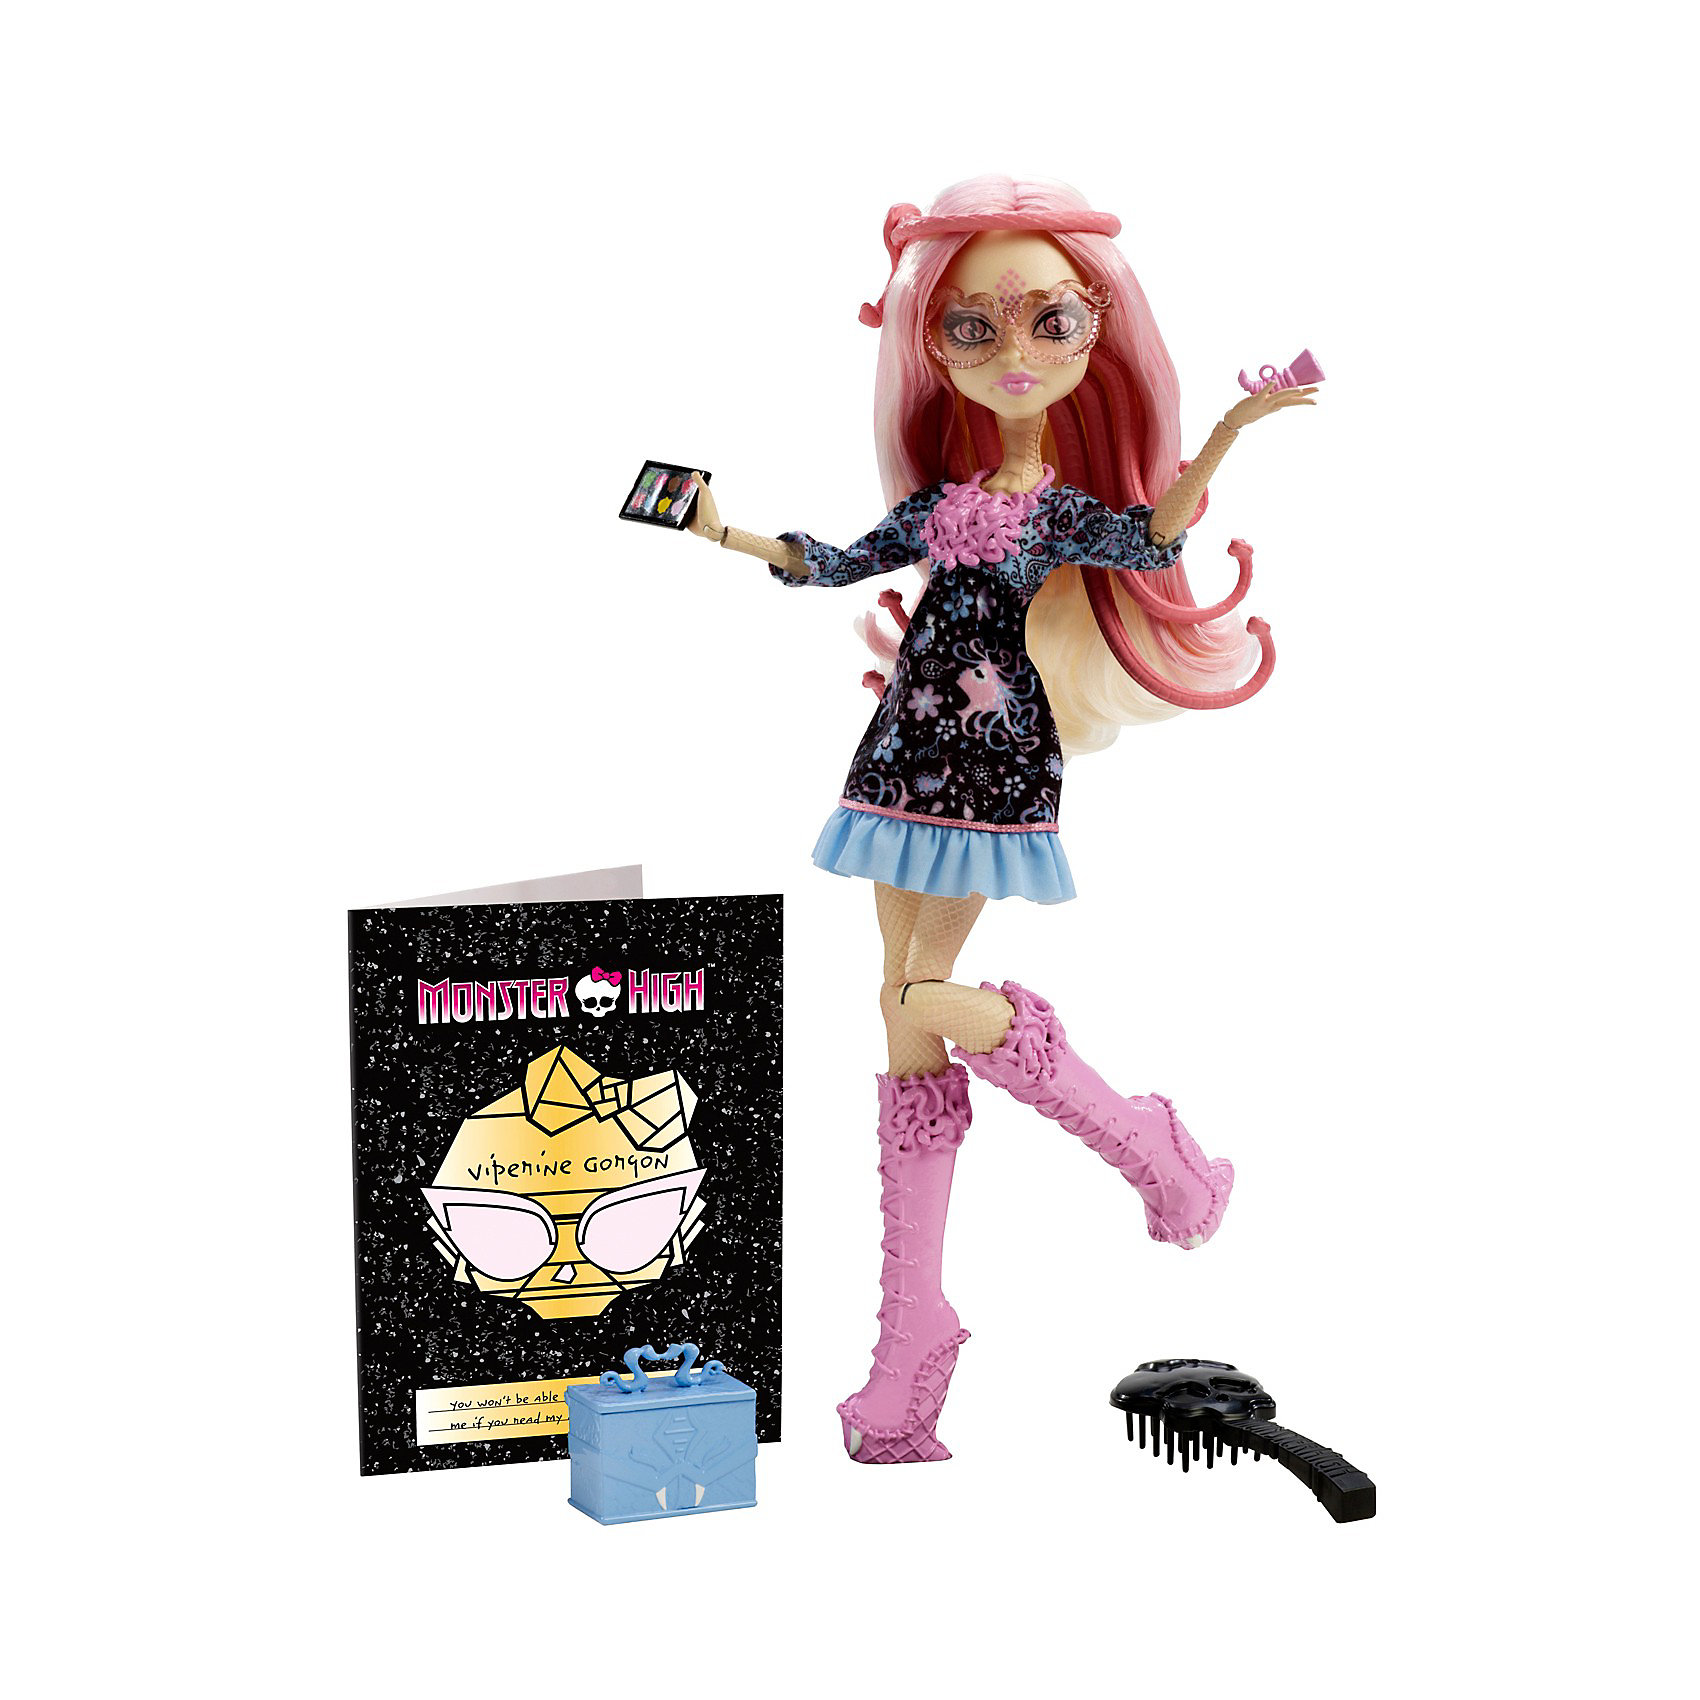 Кукла Вайперина Горгон Монстры! Камера! Мотор!, Monster High